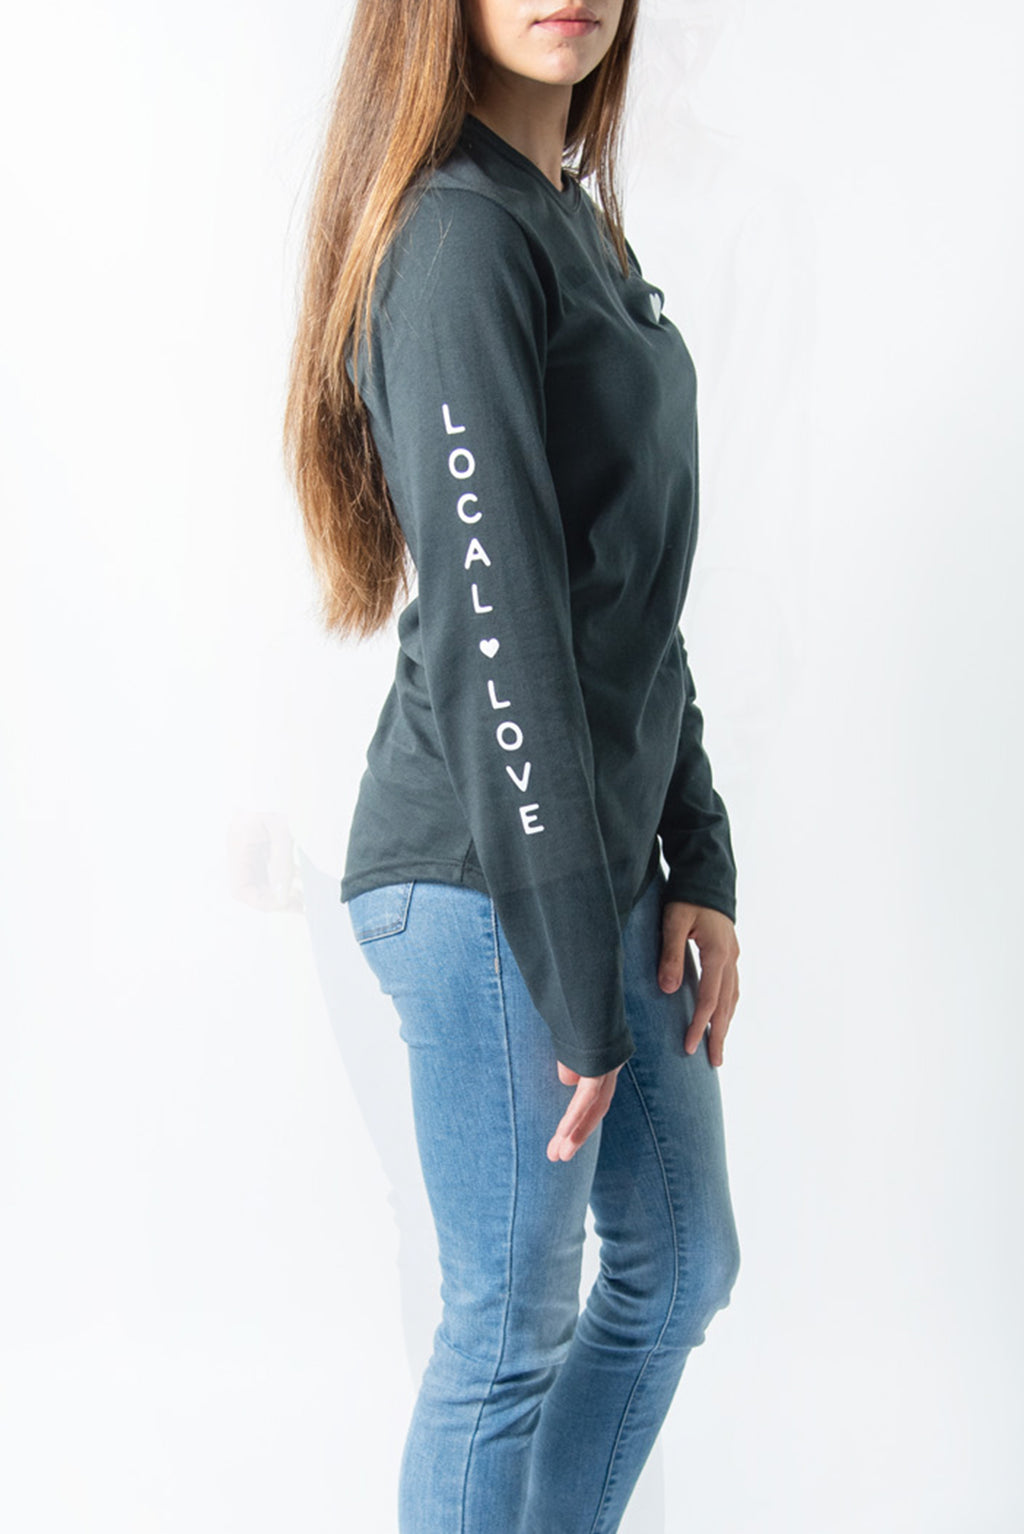 LOCAL LOVE HEART SCOOP LS CHARCOAL